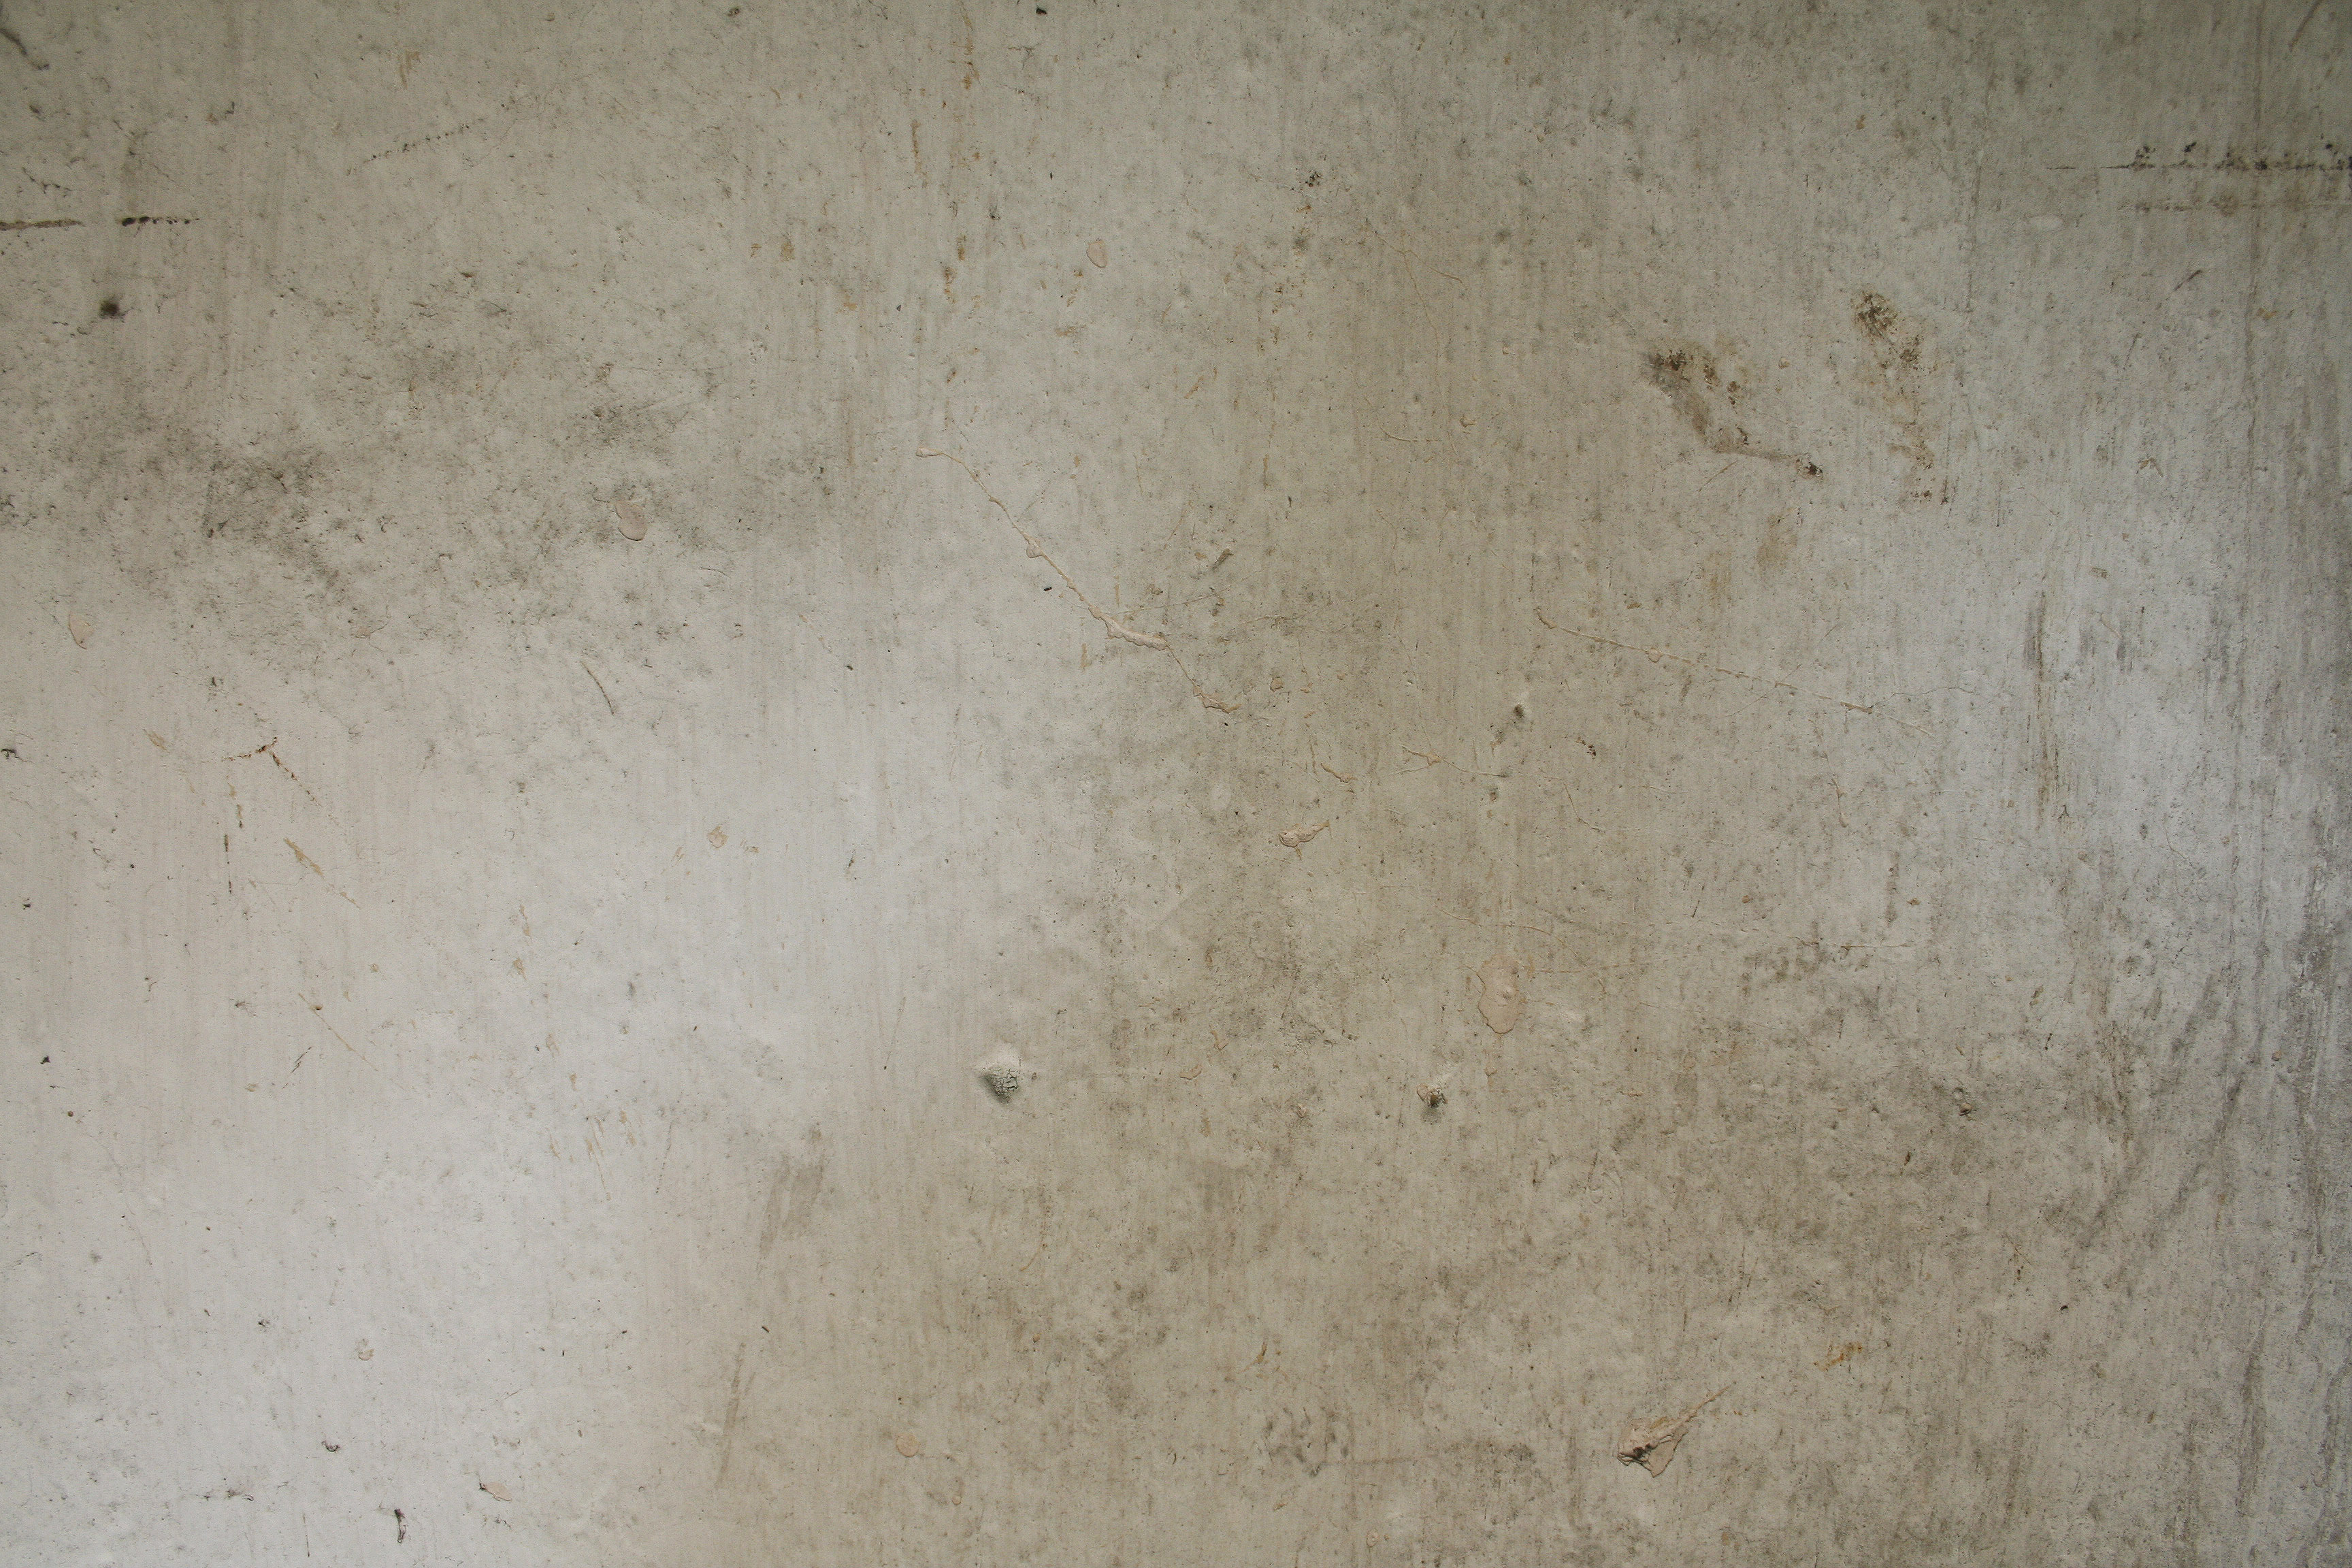 Dirty white wall texture textures for photoshop free for Free white texture